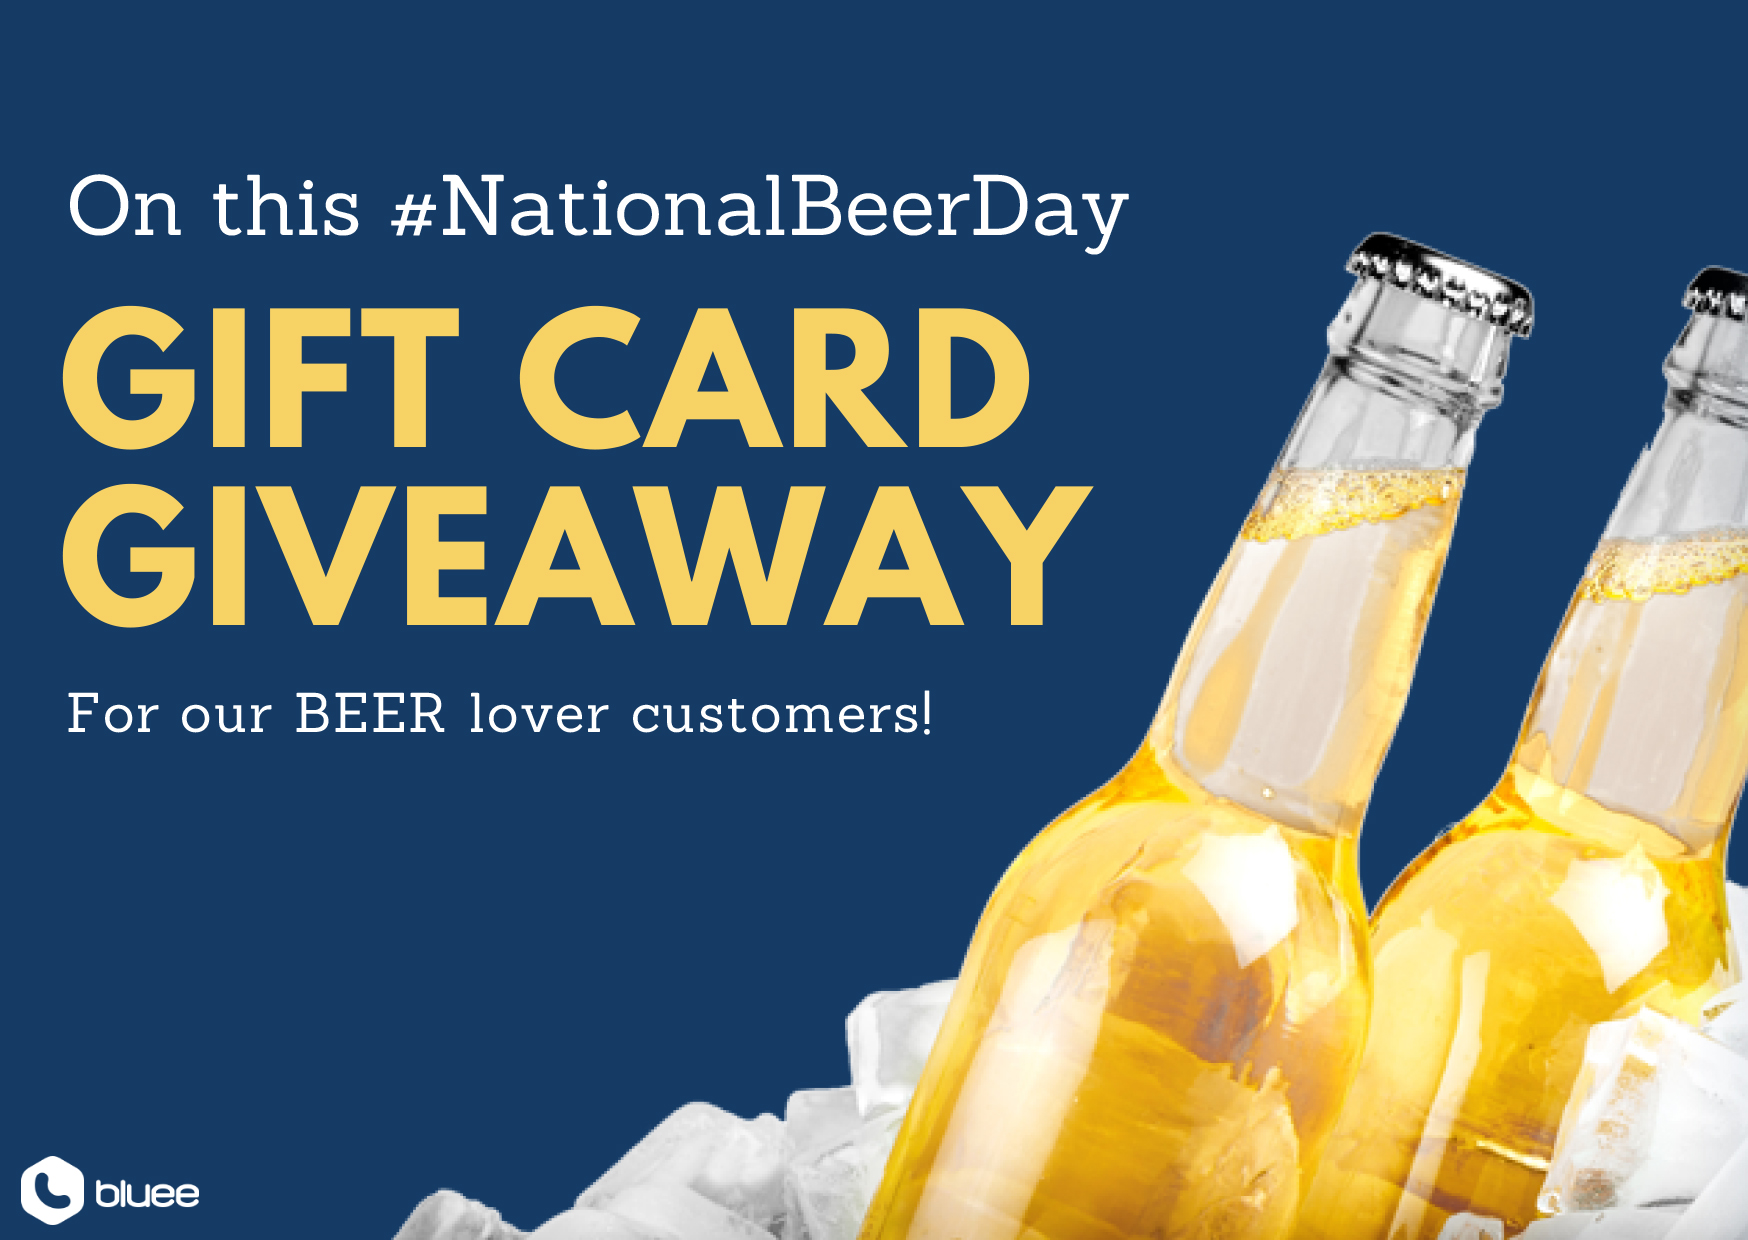 WIN a $25 GIFT CARD and more